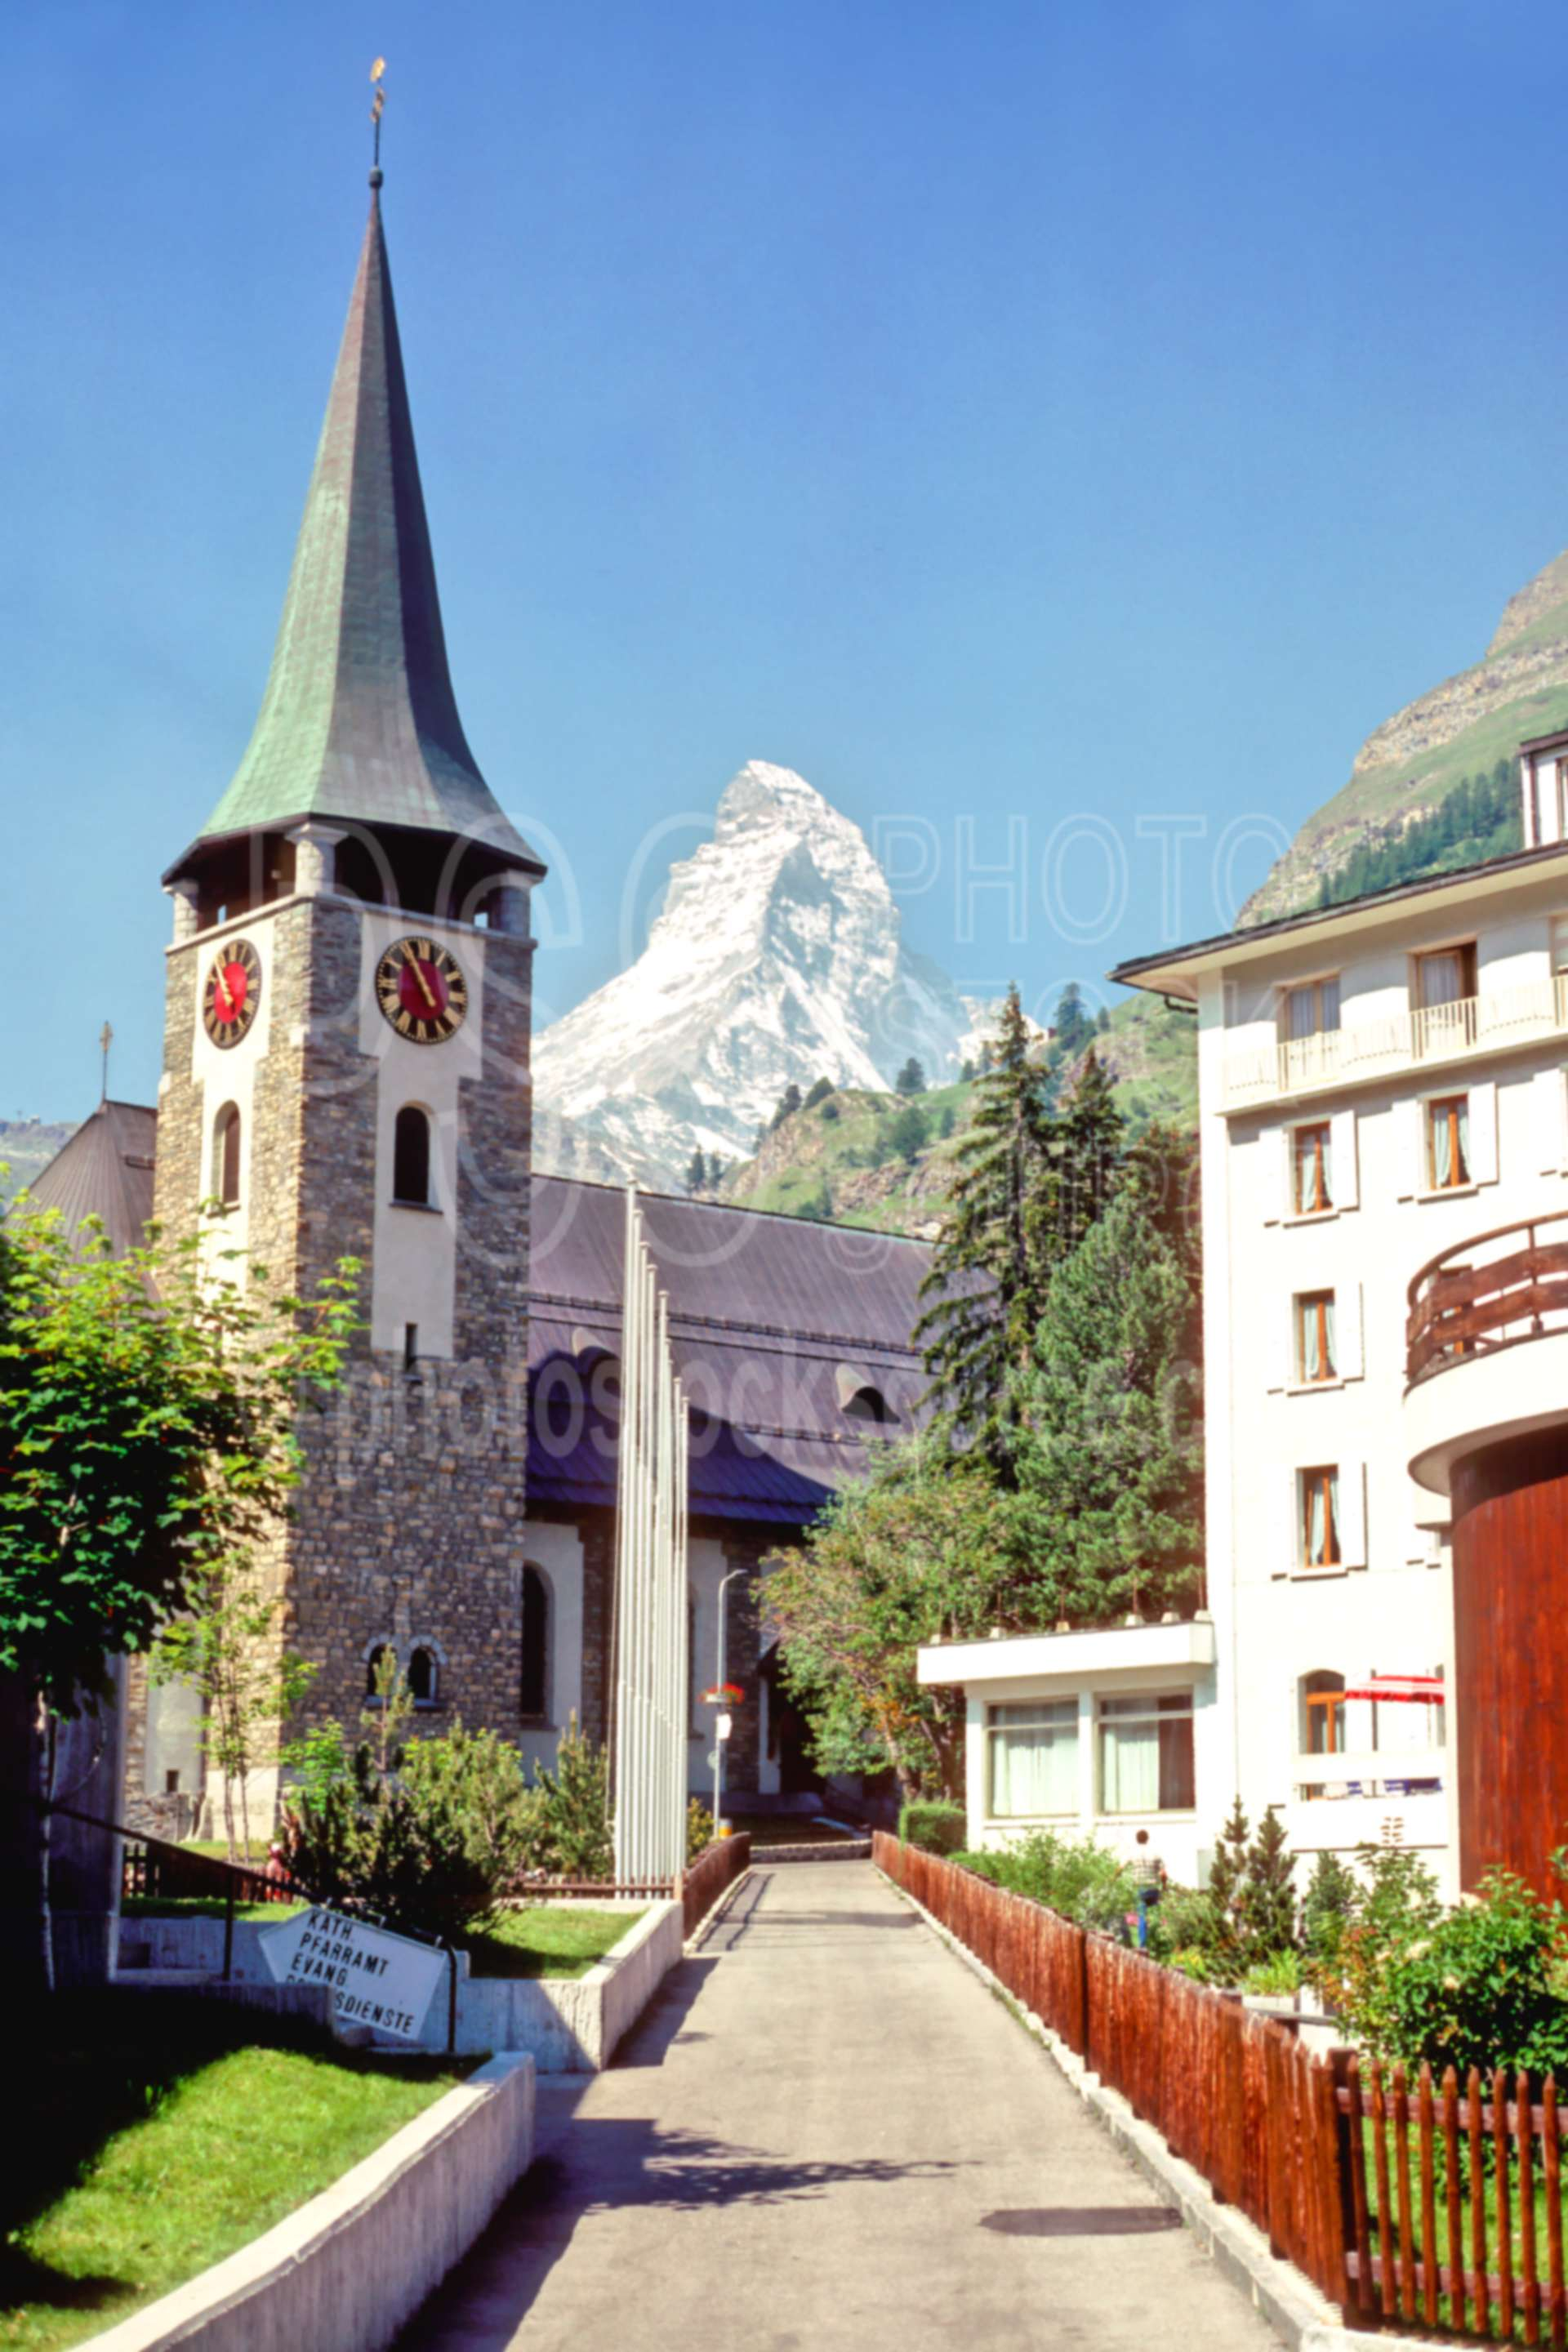 Matterhorn from Zermatt,europe,matterhorn,church,villages,churches